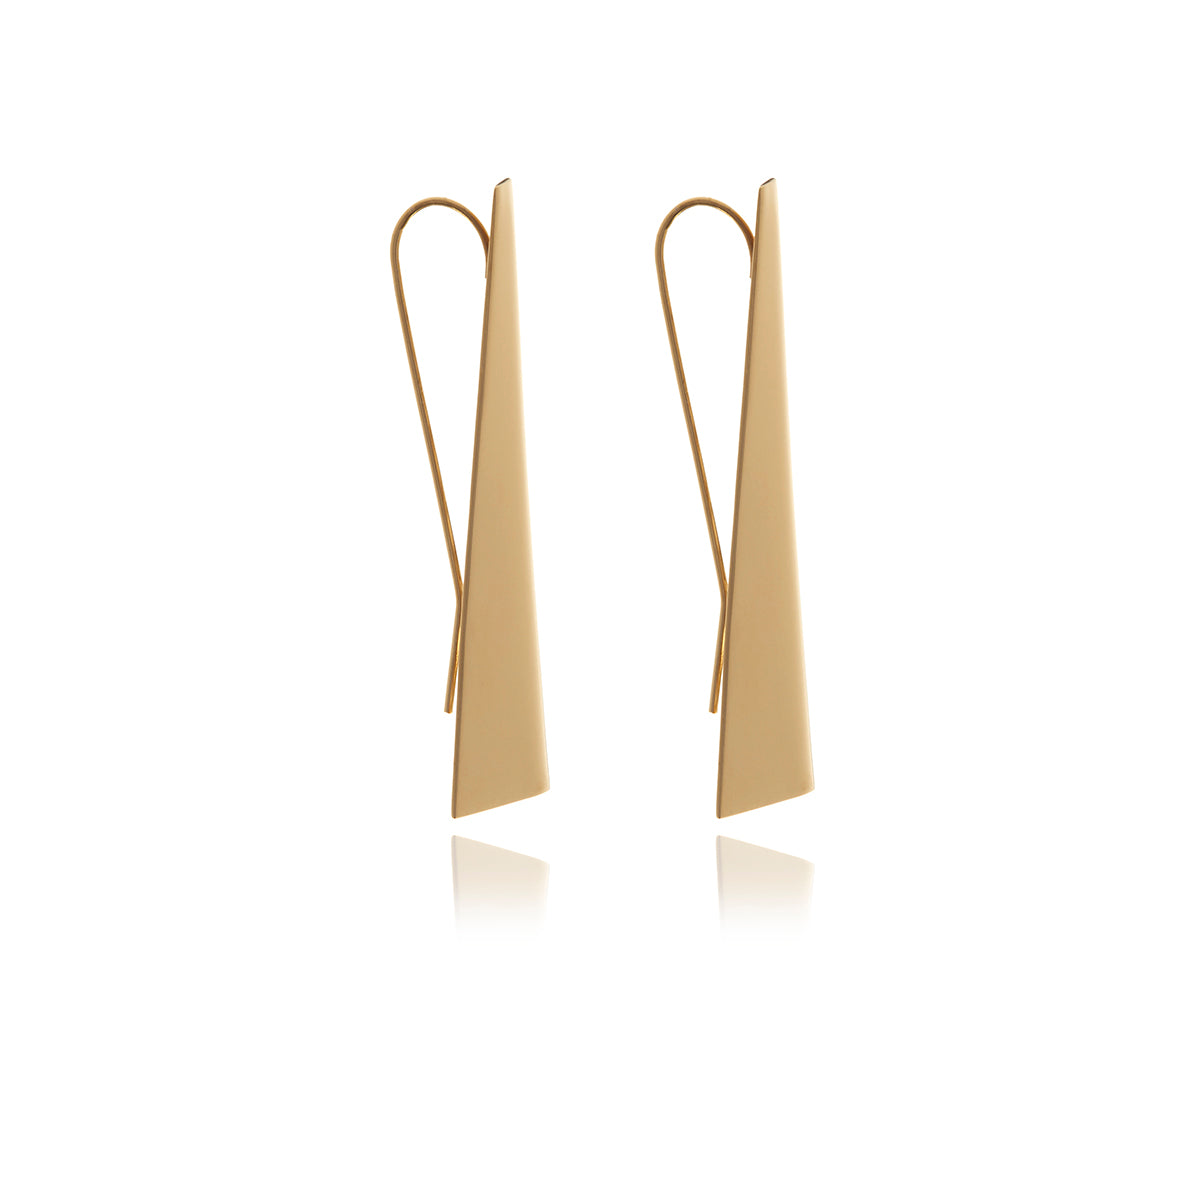 Reverie Smooth Gold Triangle Earrings - MCK Brands